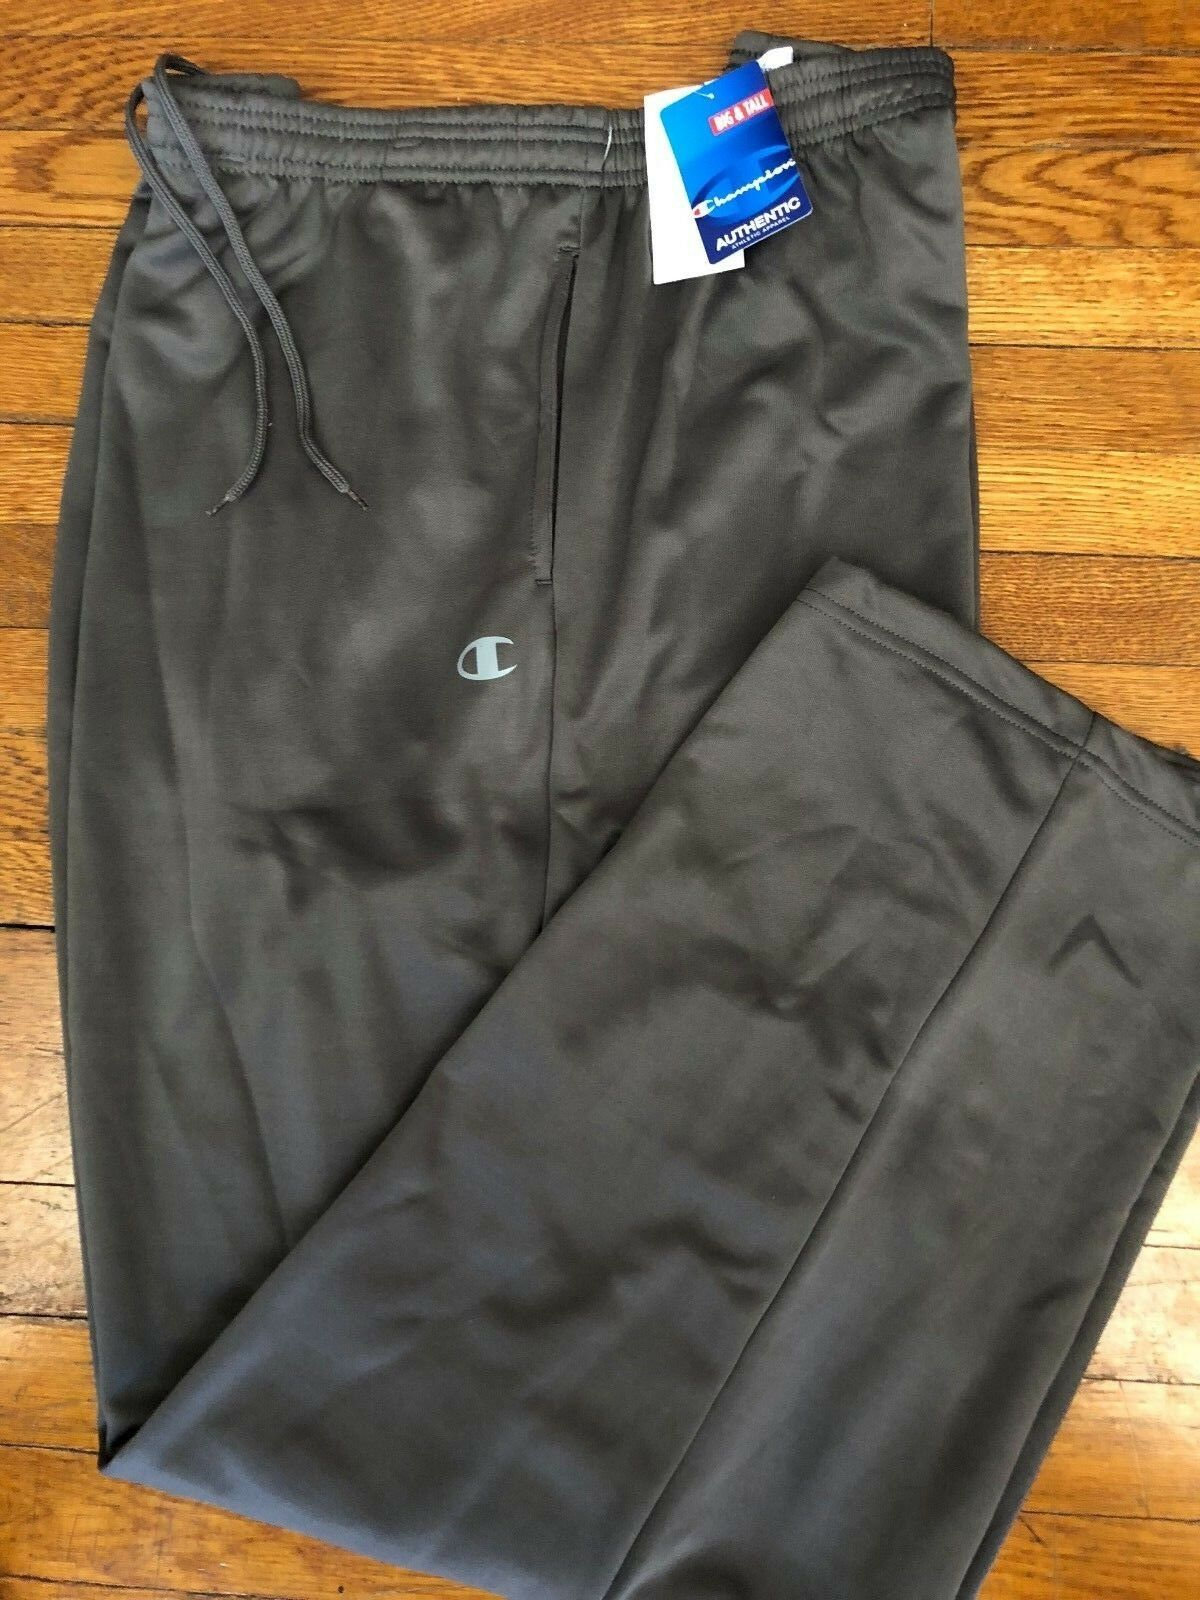 NWT CHAMPION GREY PERFORMANCE SWEATPANTS SZ 4XL 4X